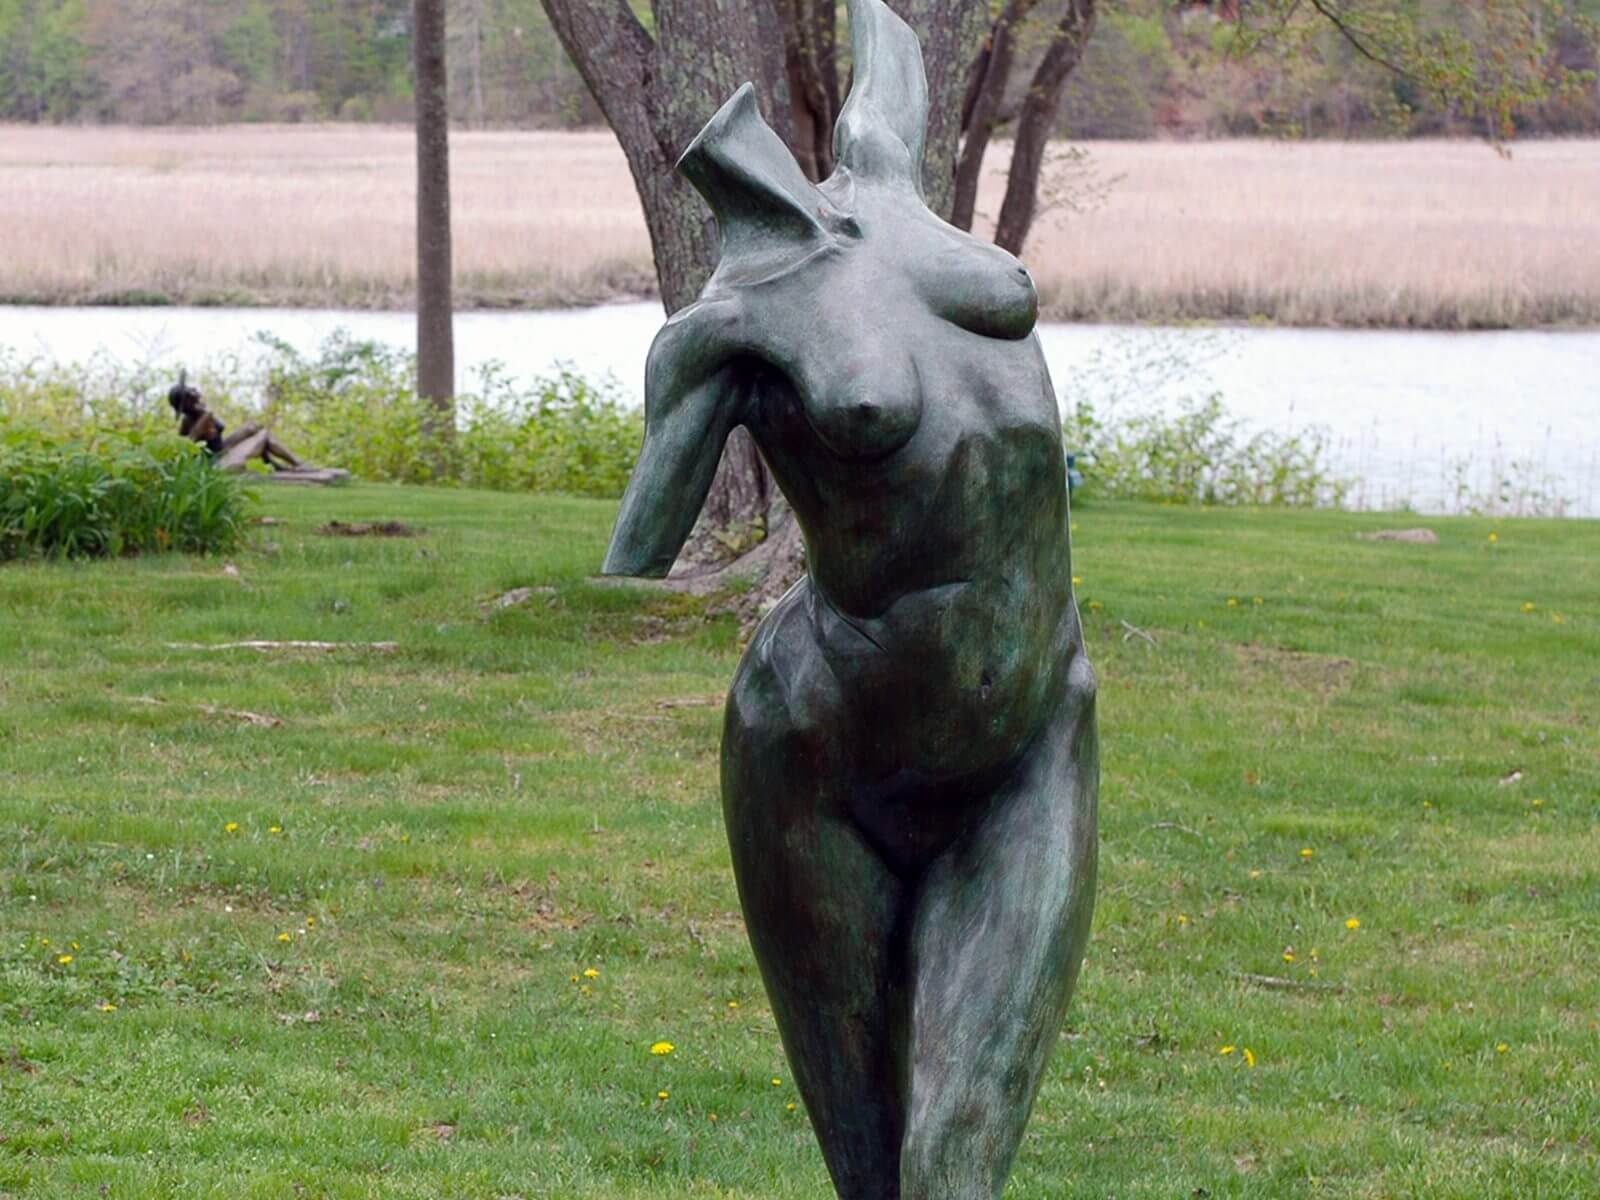 Calliope an over life size female bronze figurative torso sculpture commissioned by Harold and Julie de Wolff installed at Miss Porter's School in Farmington CT by Andrew DeVries